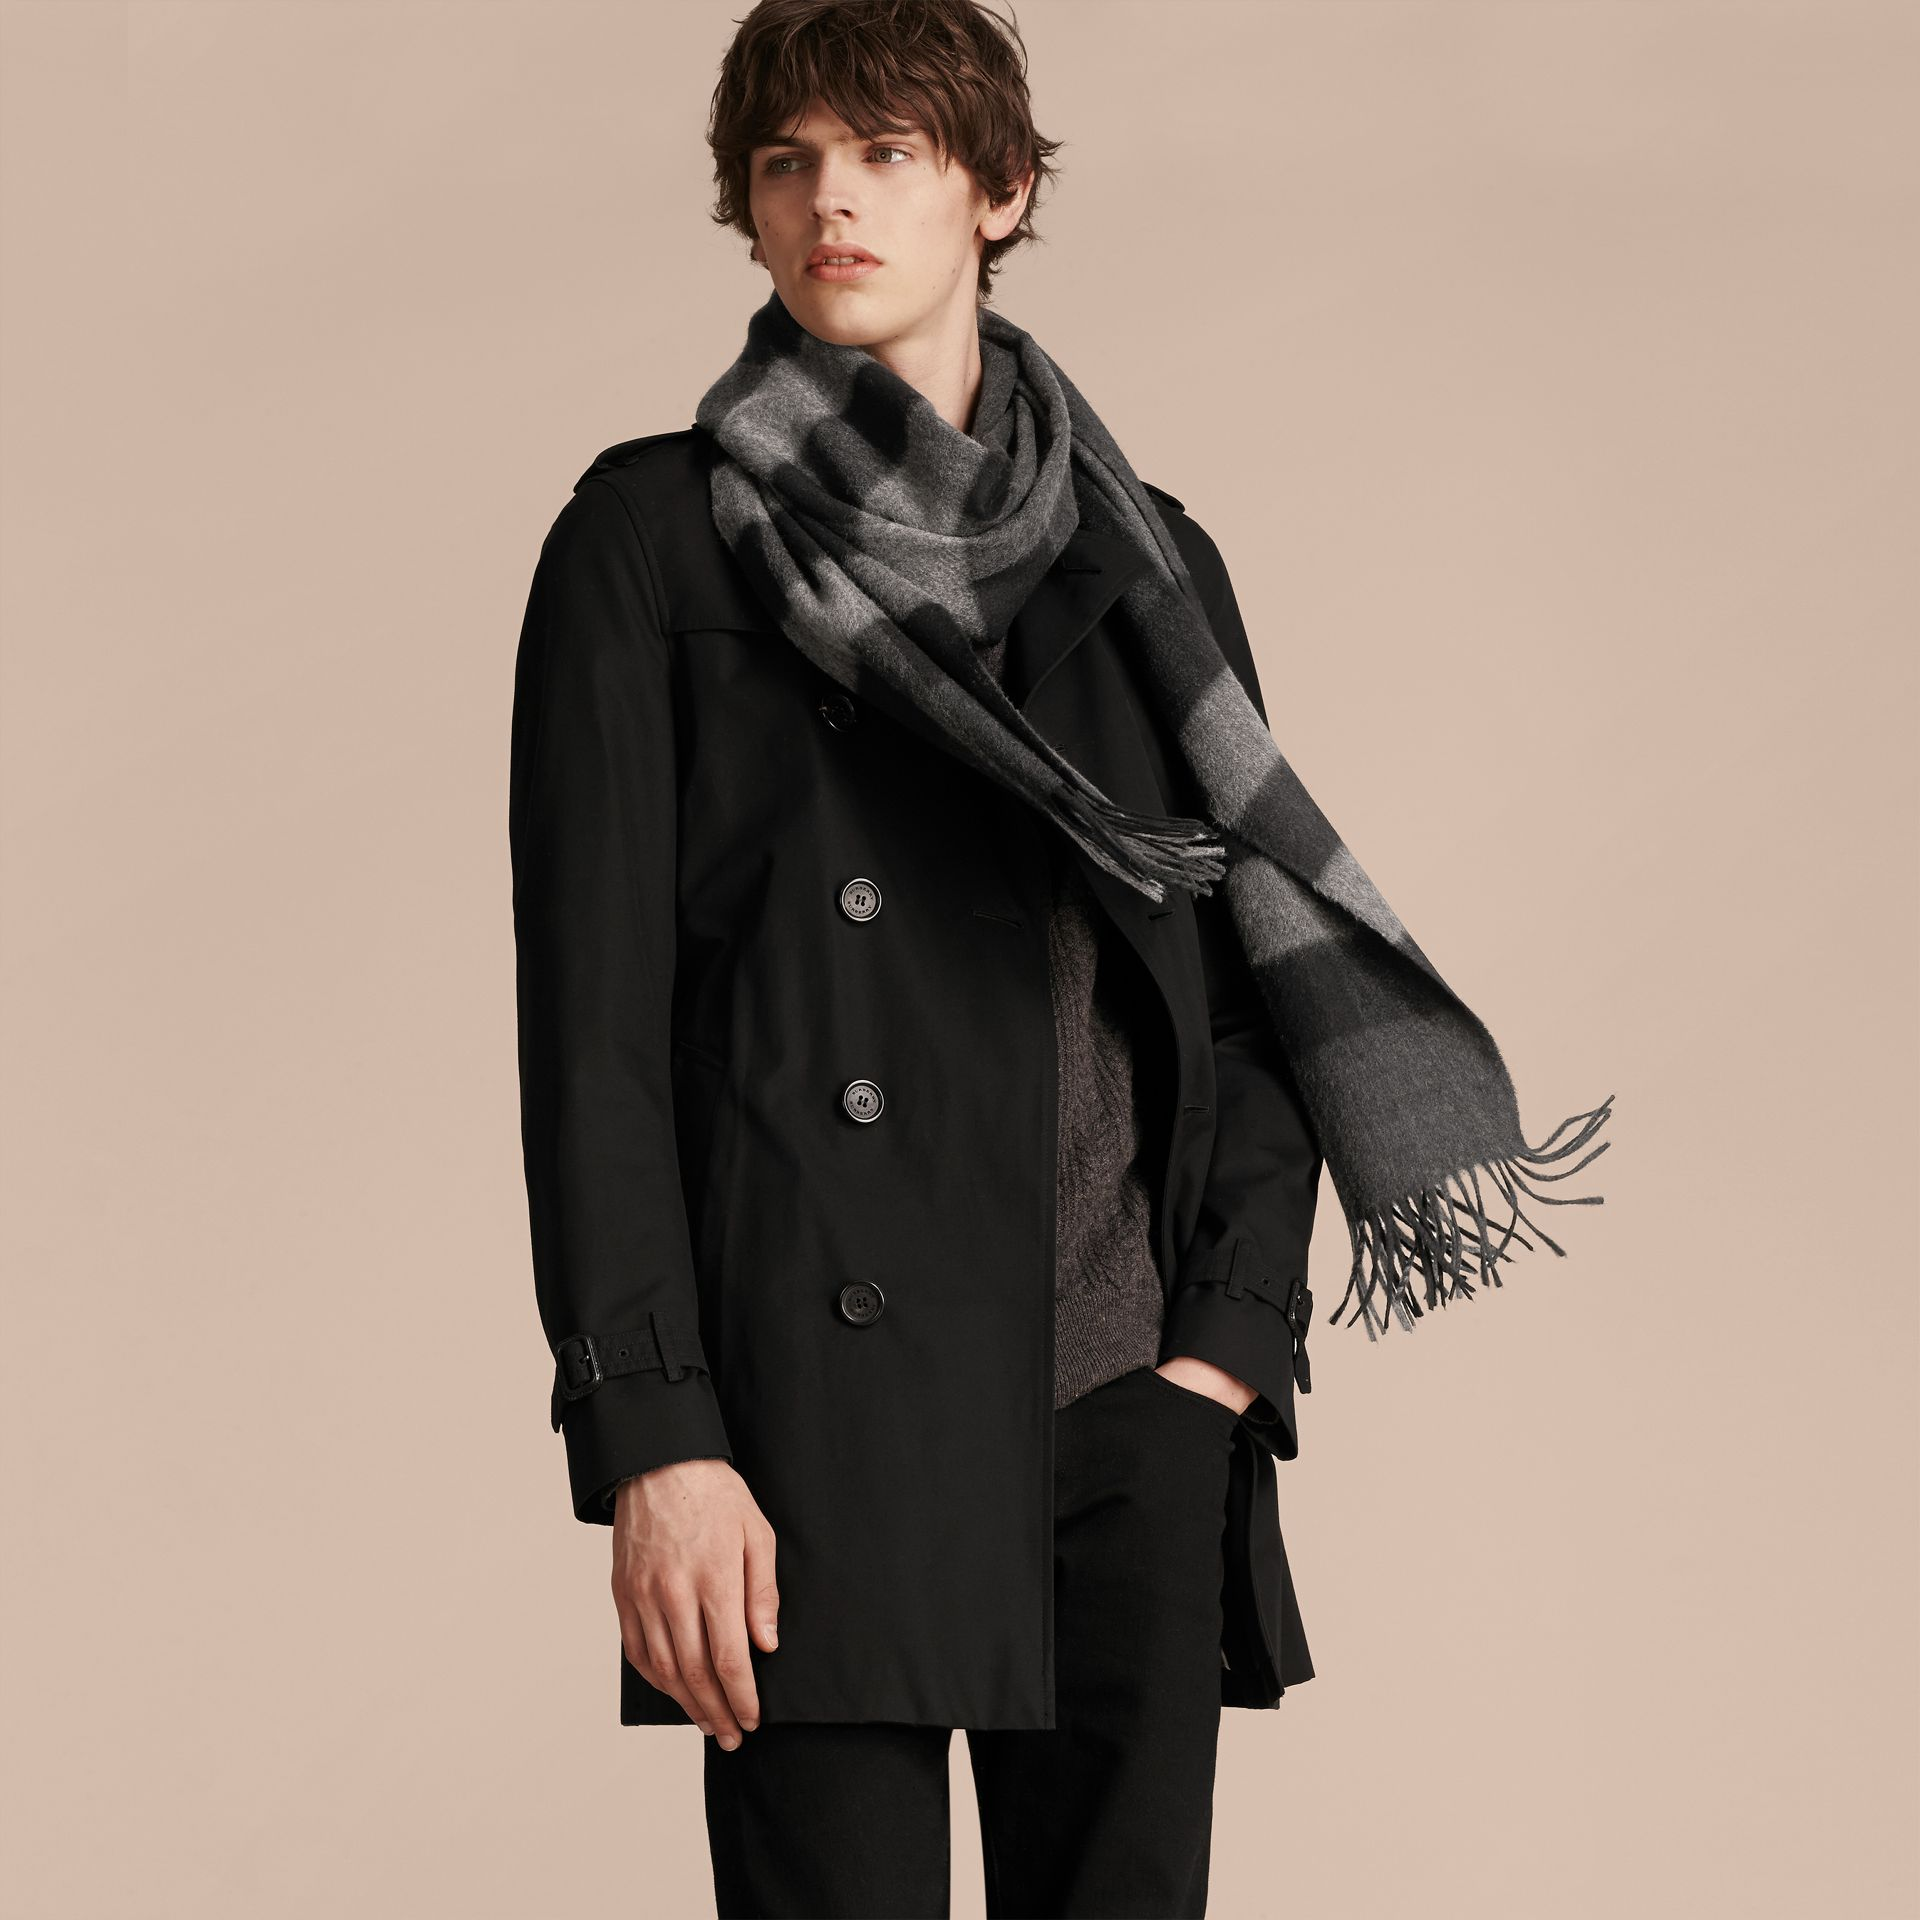 Charcoal check The Large Classic Cashmere Scarf in Check Charcoal - gallery image 4